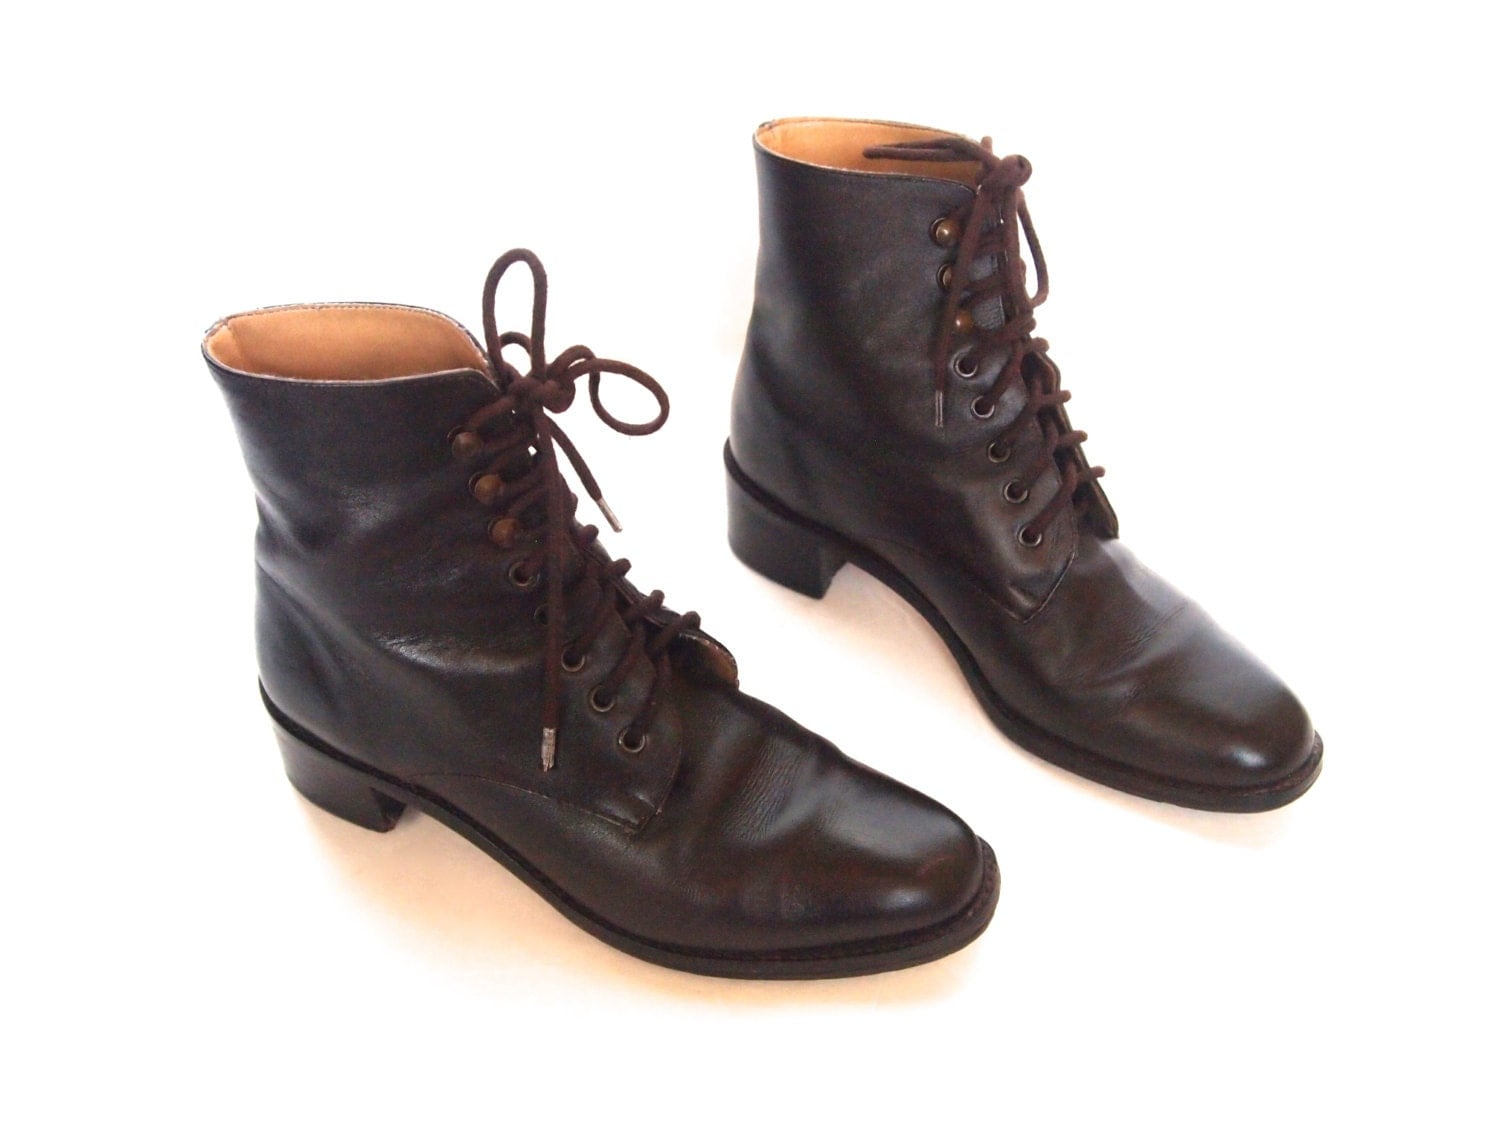 size 5 5 vintage 90s brown leather boots